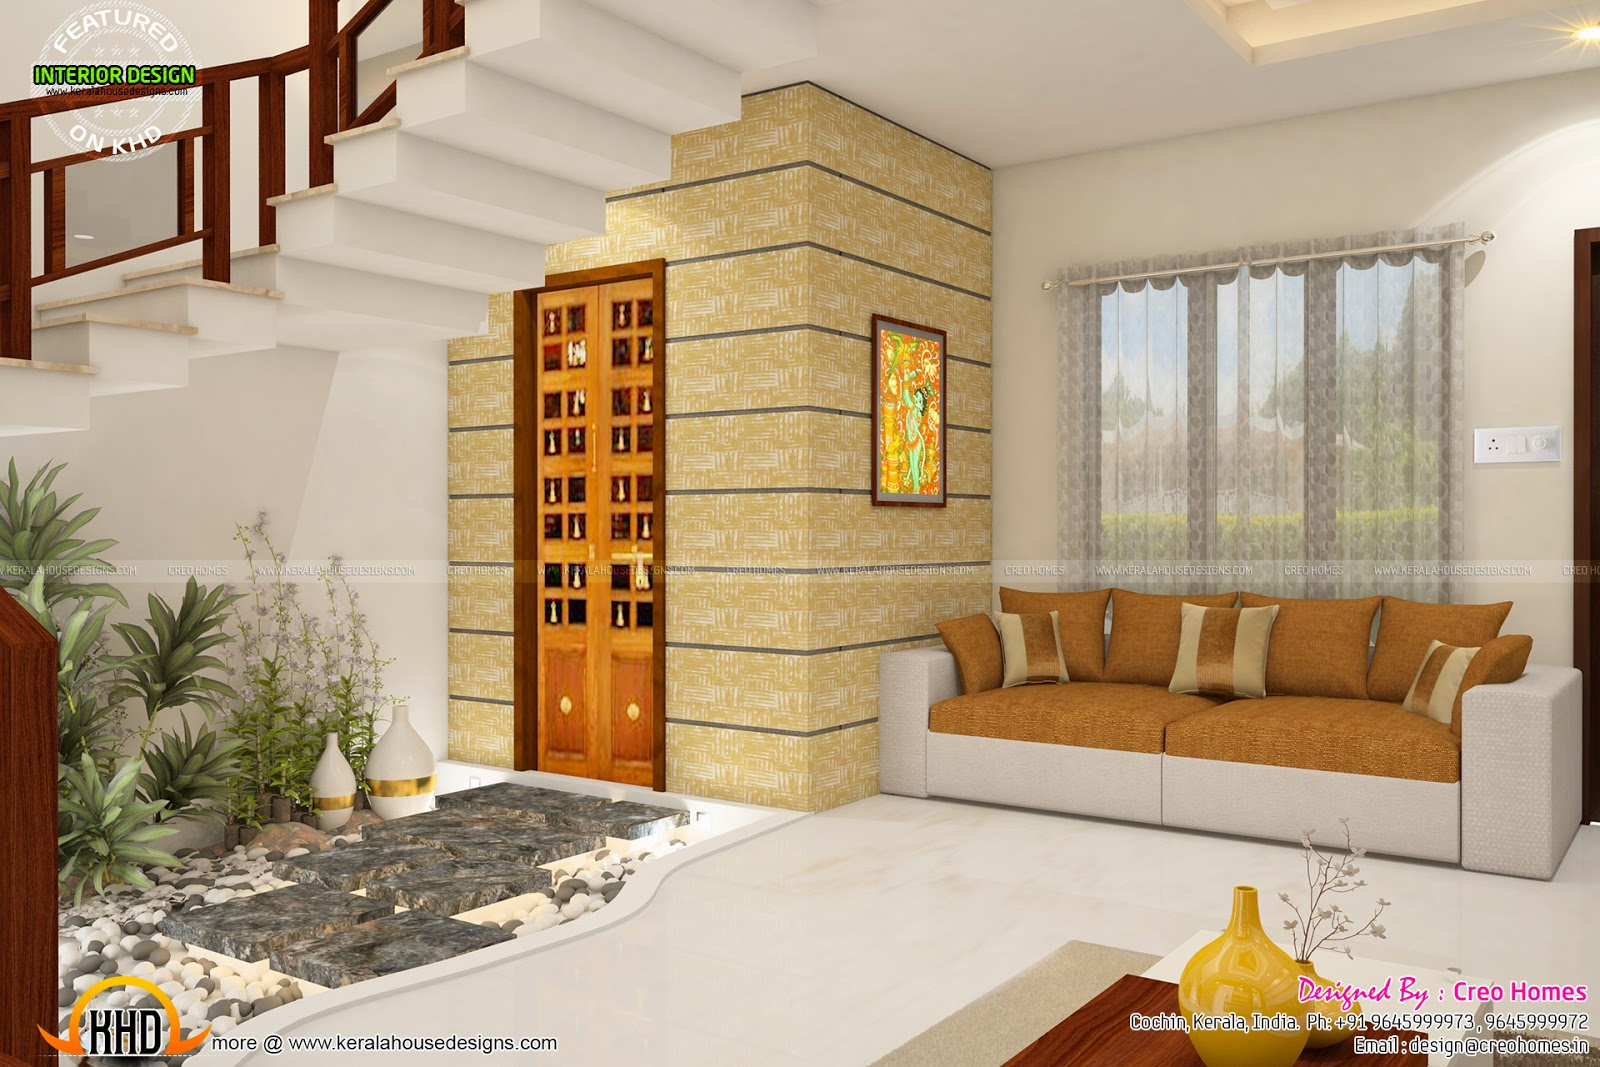 Total home interior solutions by creo homes kerala home for Kerala home interior